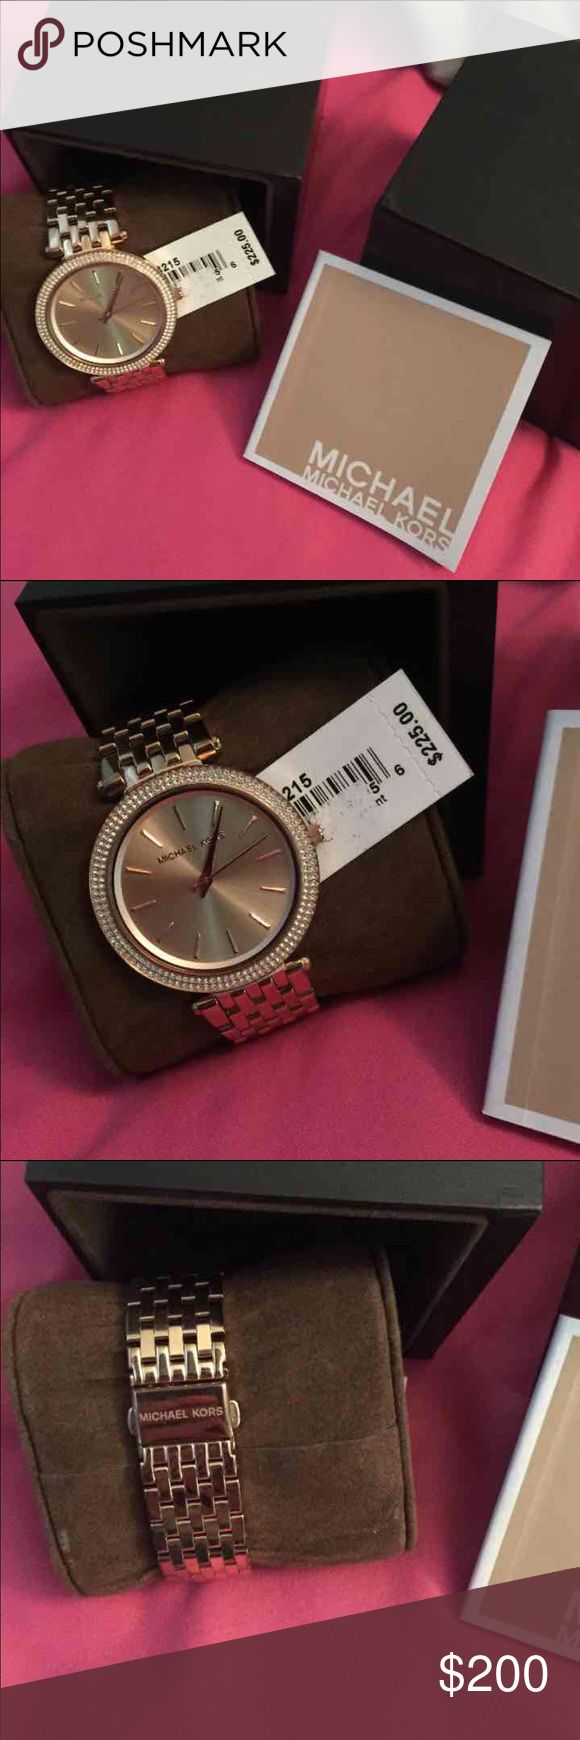 Michael Kors rose gold women's watch Brand new authentic rose gold women's watch . Comes with box, papers, tags and links are still on watch. Retails for 225 Michael Kors Accessories Watches